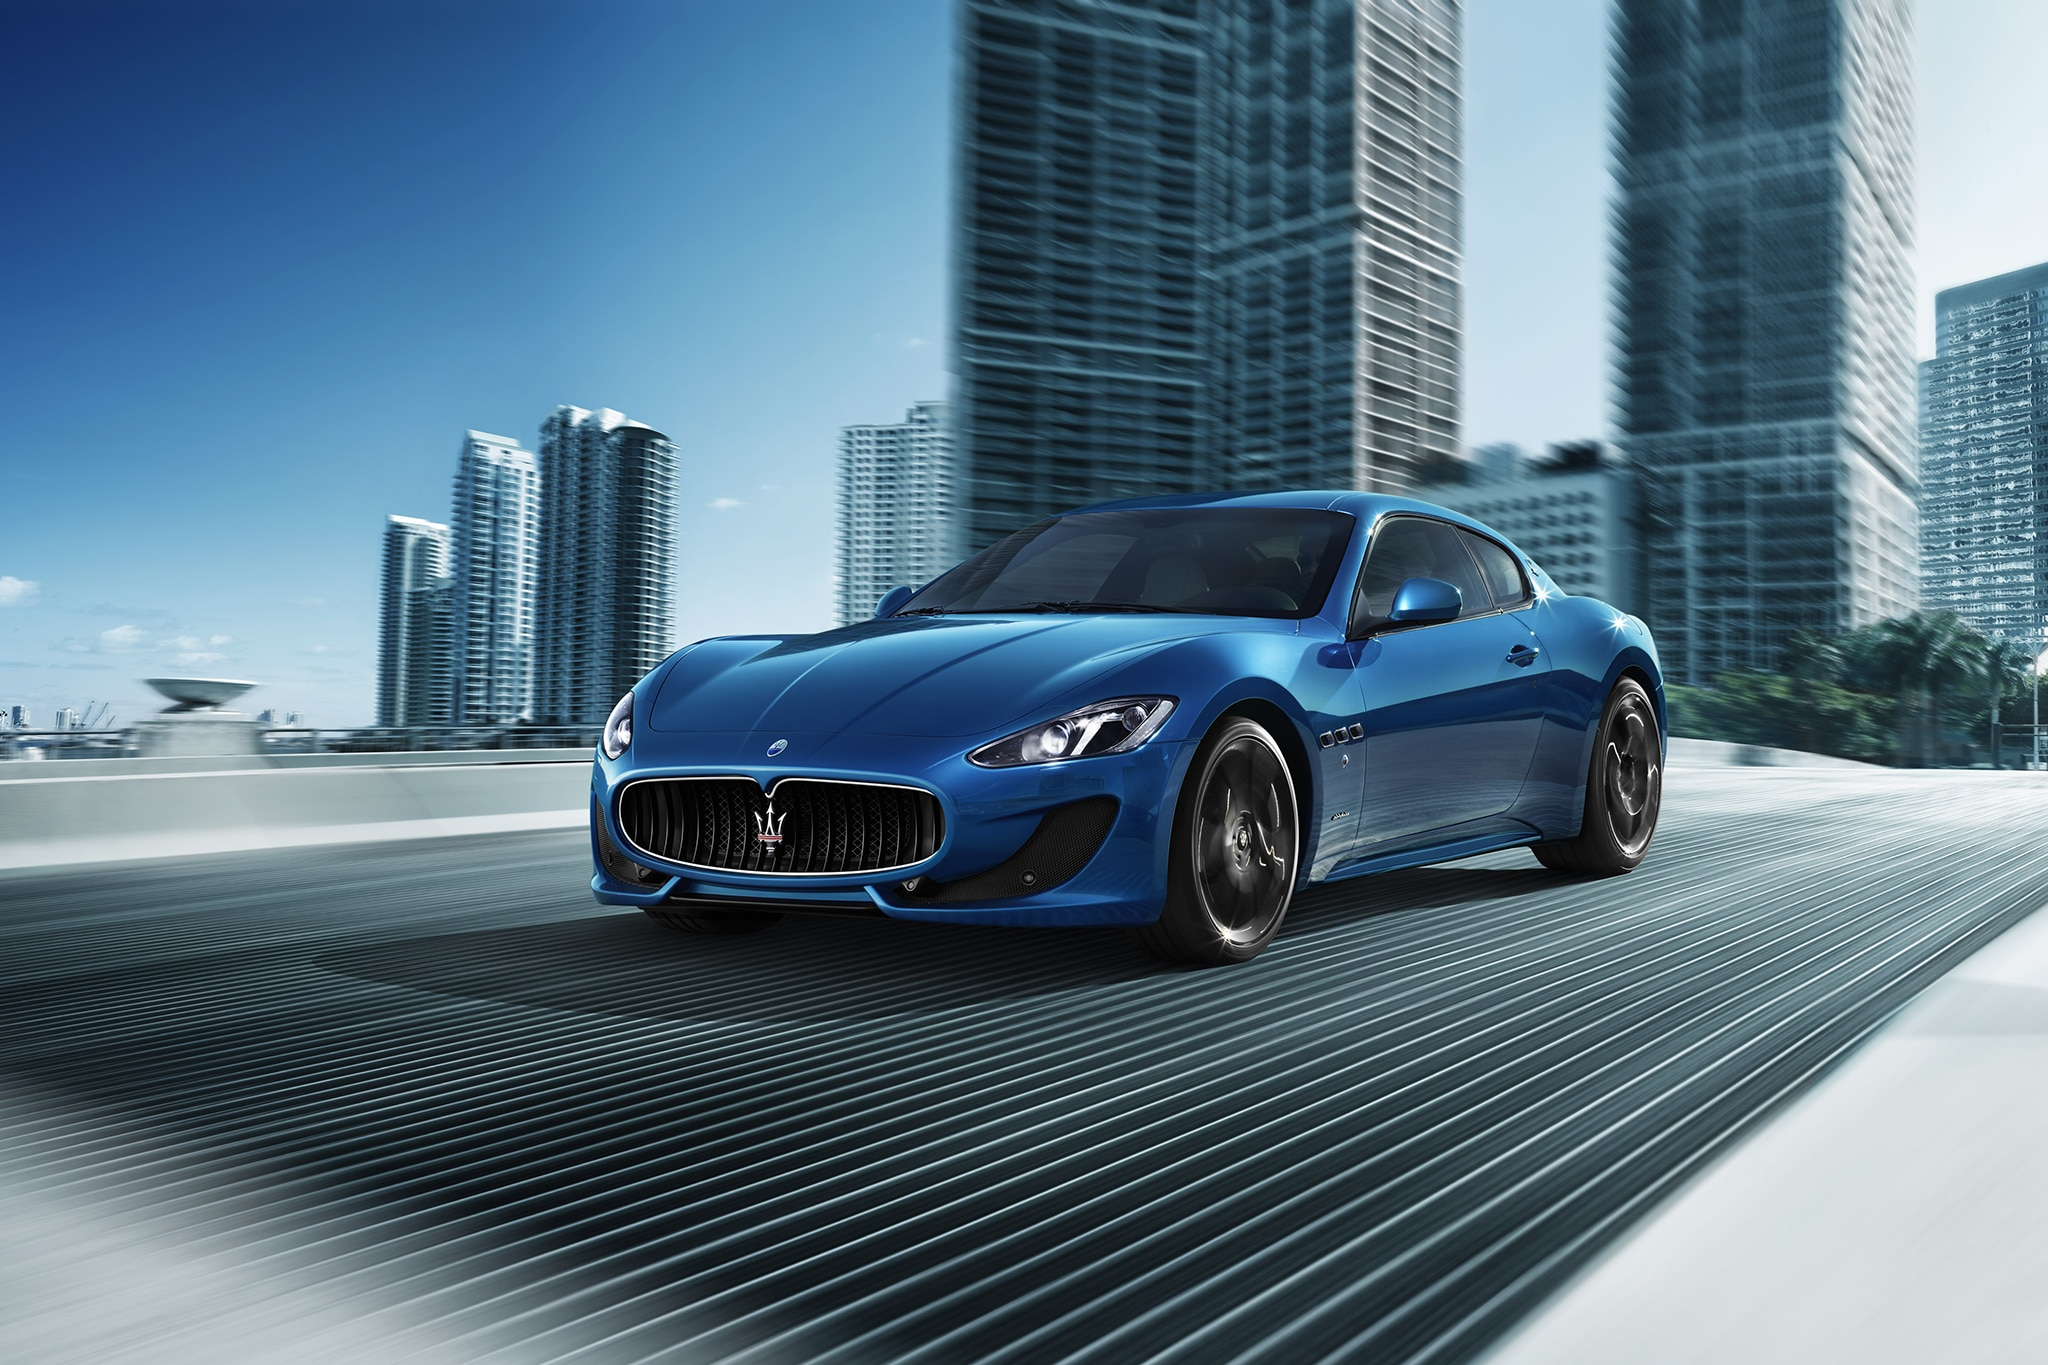 http://st.automobilemag.com/uploads/sites/10/2015/09/2013-Maserati-GranTurismo-Sport-front-drivers-side-view-in-motion.jpg